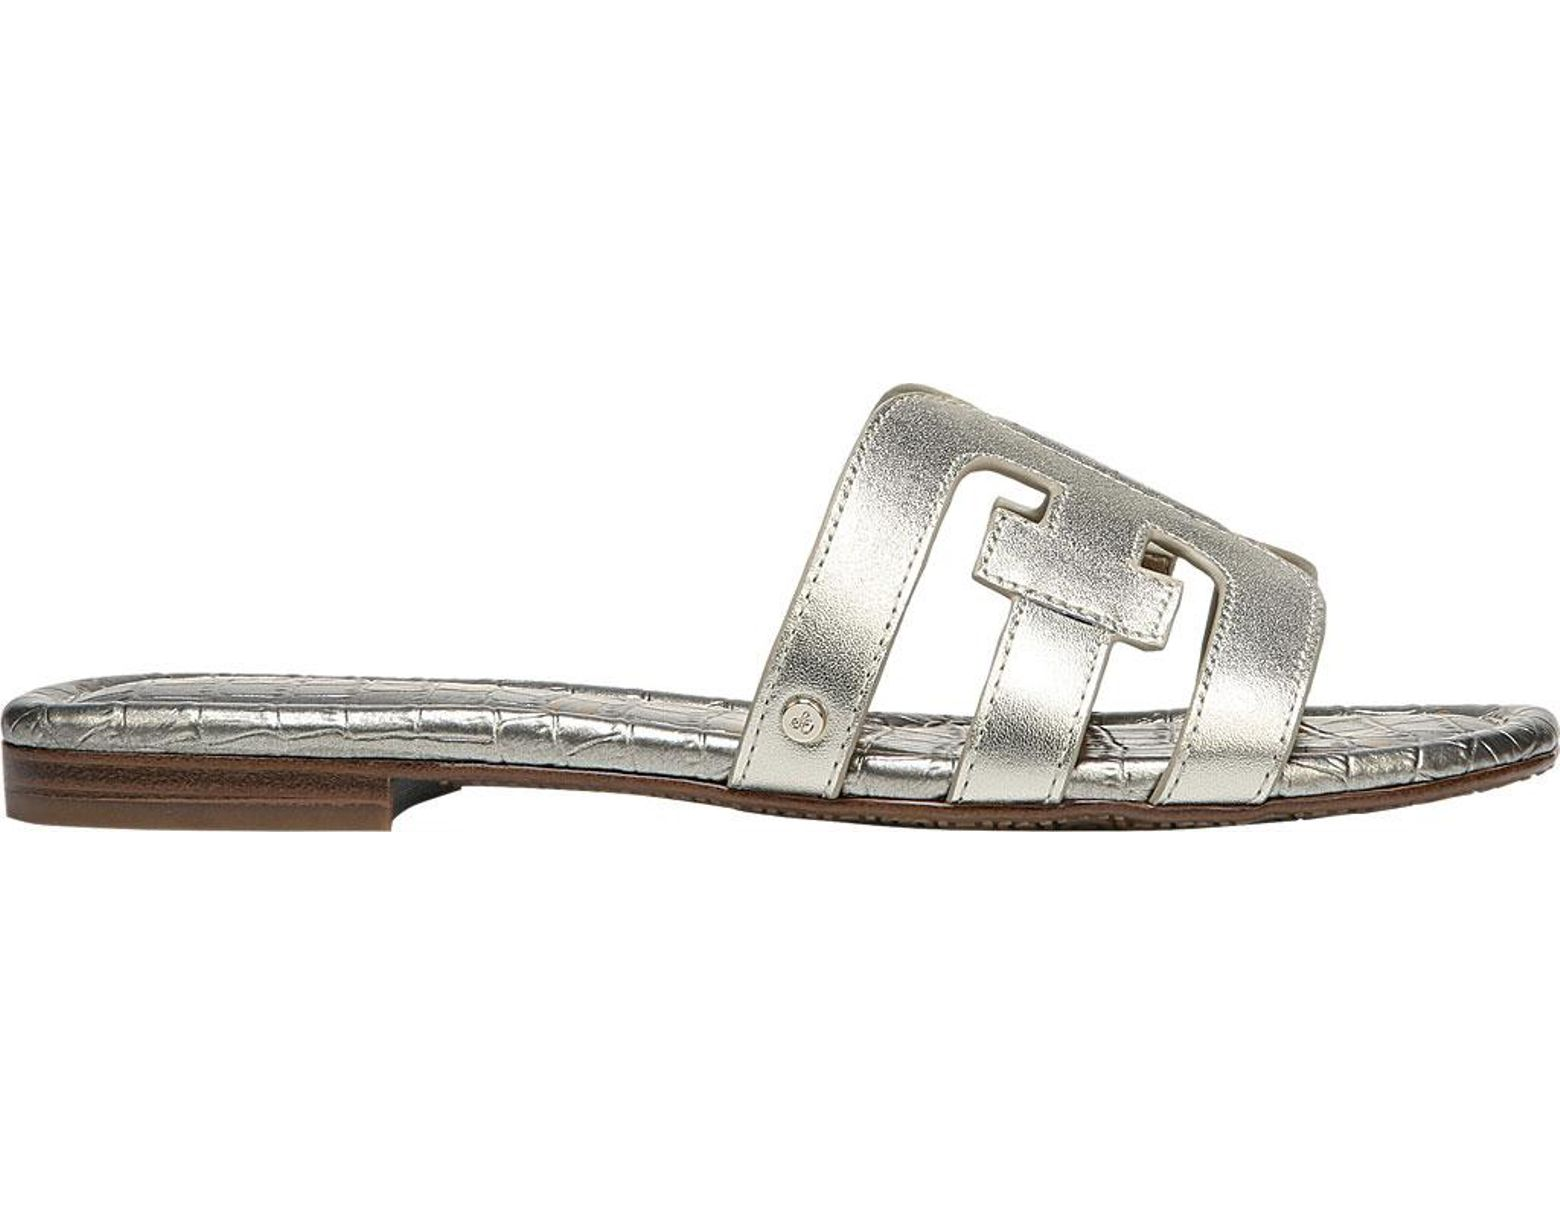 0a2a5d1db53c Lyst - Sam Edelman Women s Bay Slide Sandals in Metallic - Save 51%